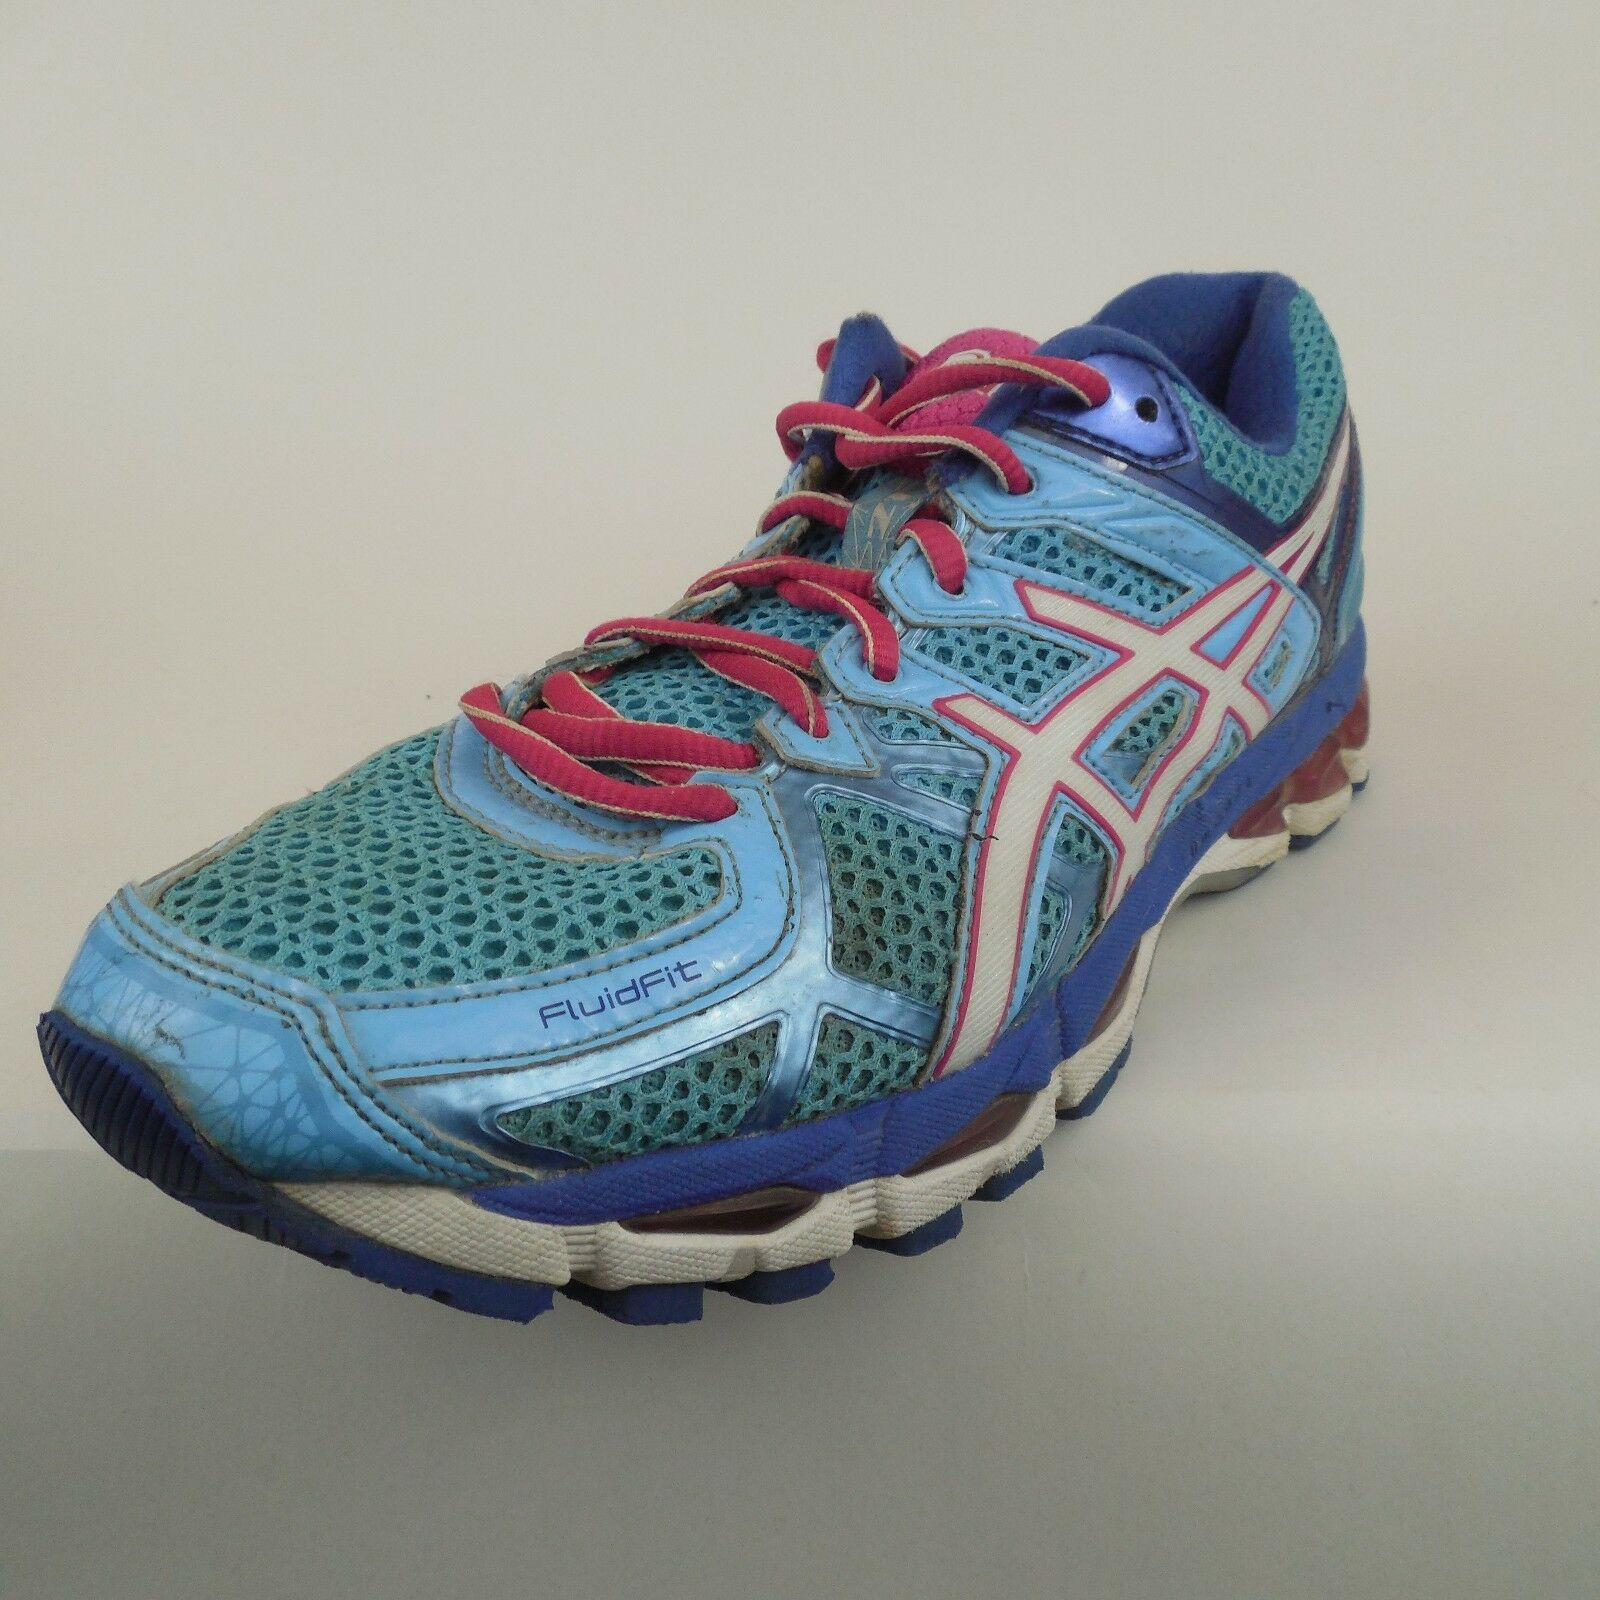 Asics Gel Kayano 21 Women's  shoes Sneakers Trainers T4H7N 4401 US Sz 8.5 M Used